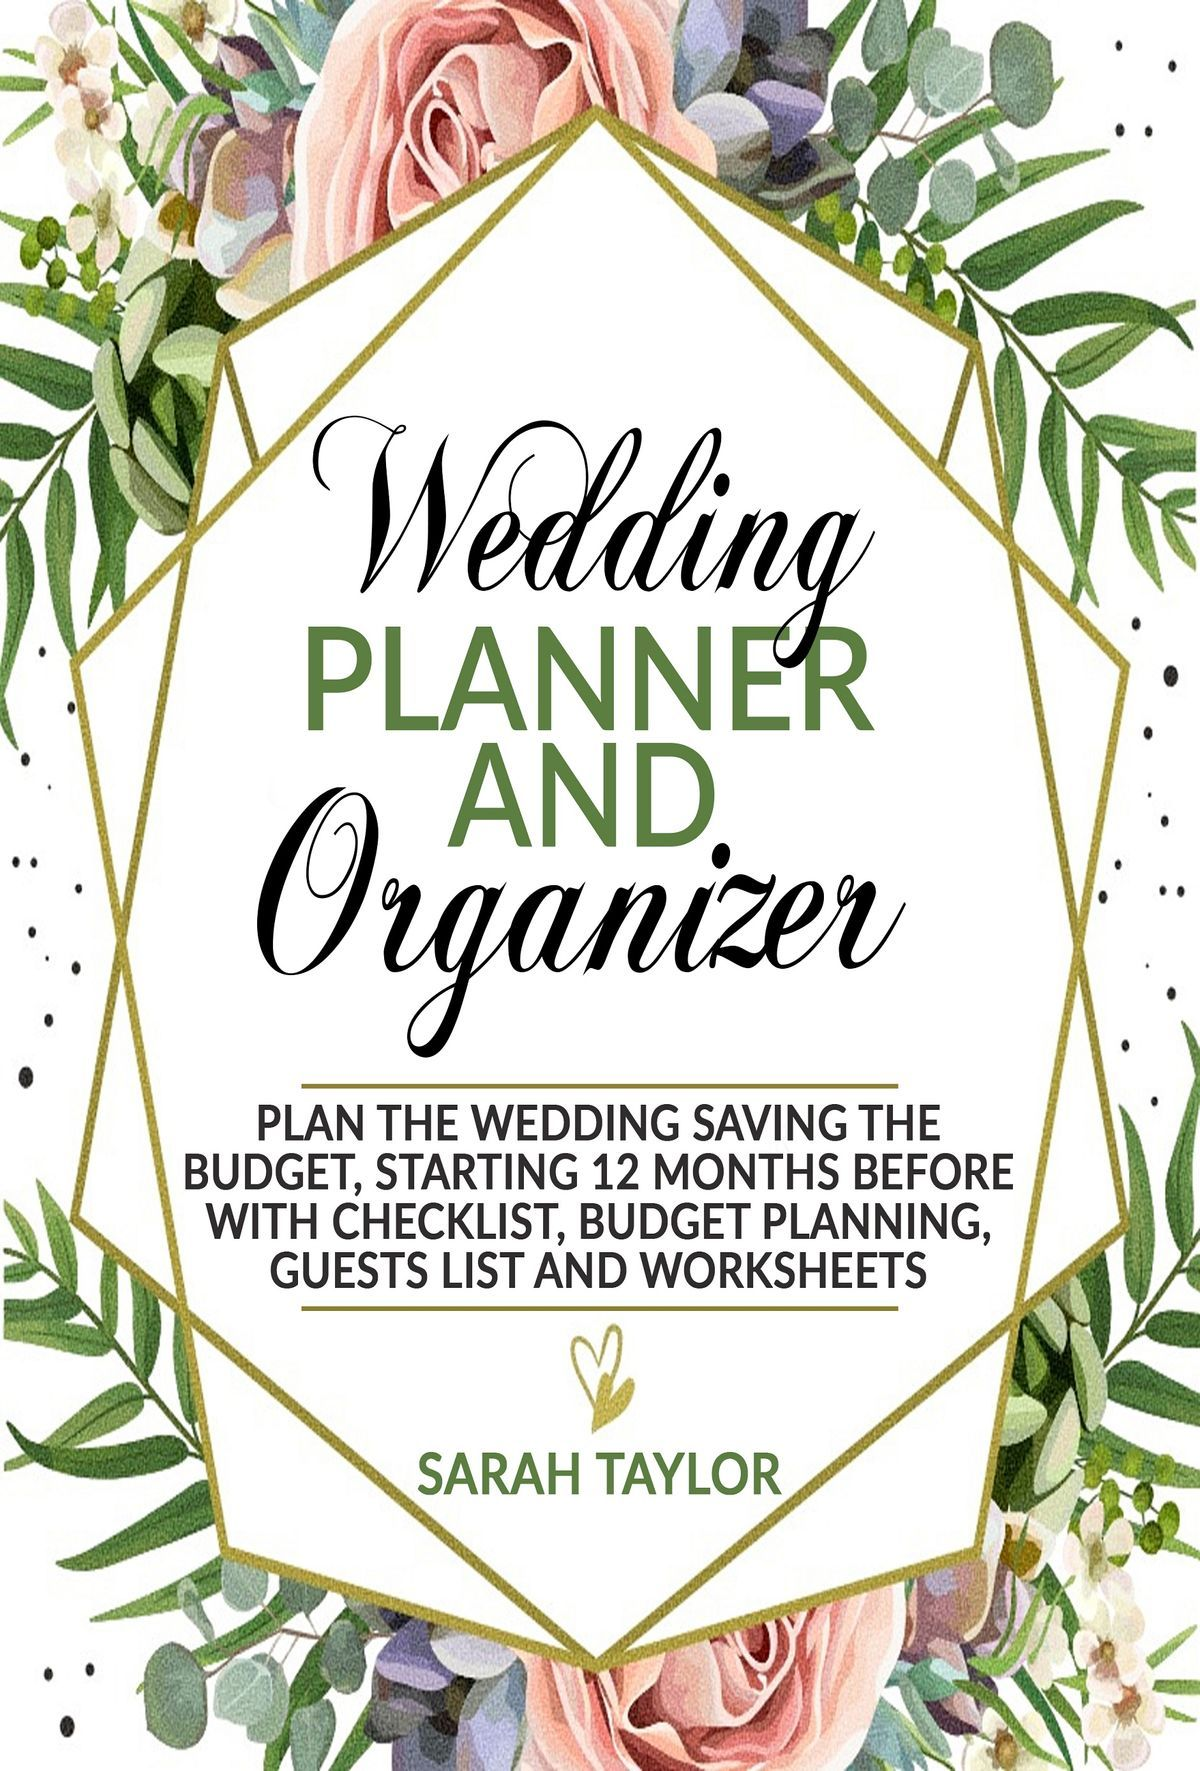 Wedding Planner And Organizer Ebook By Sarah Taylor In